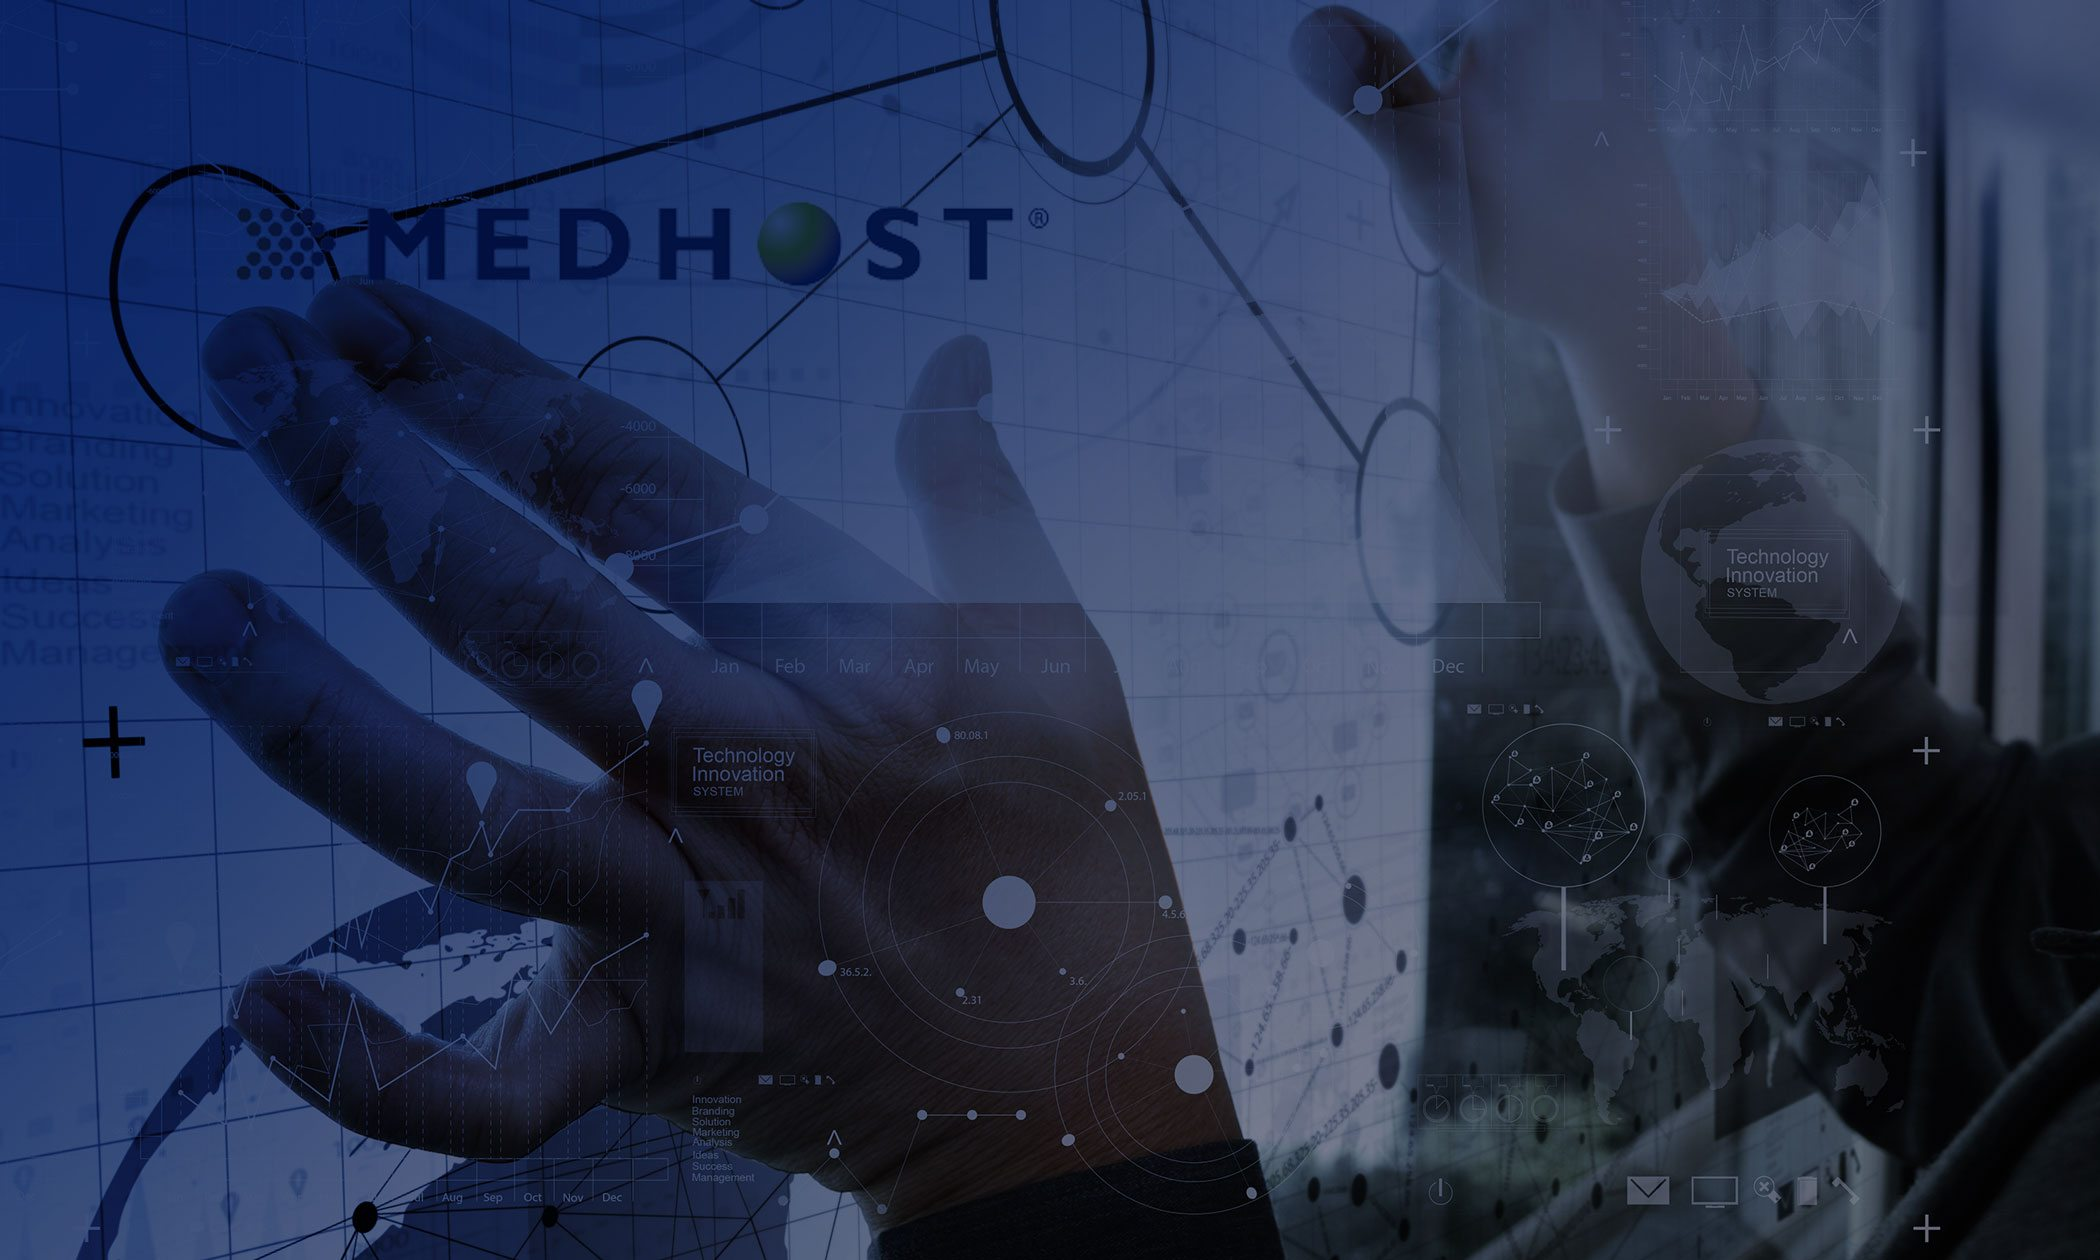 MEDHOST (HMS) page title background